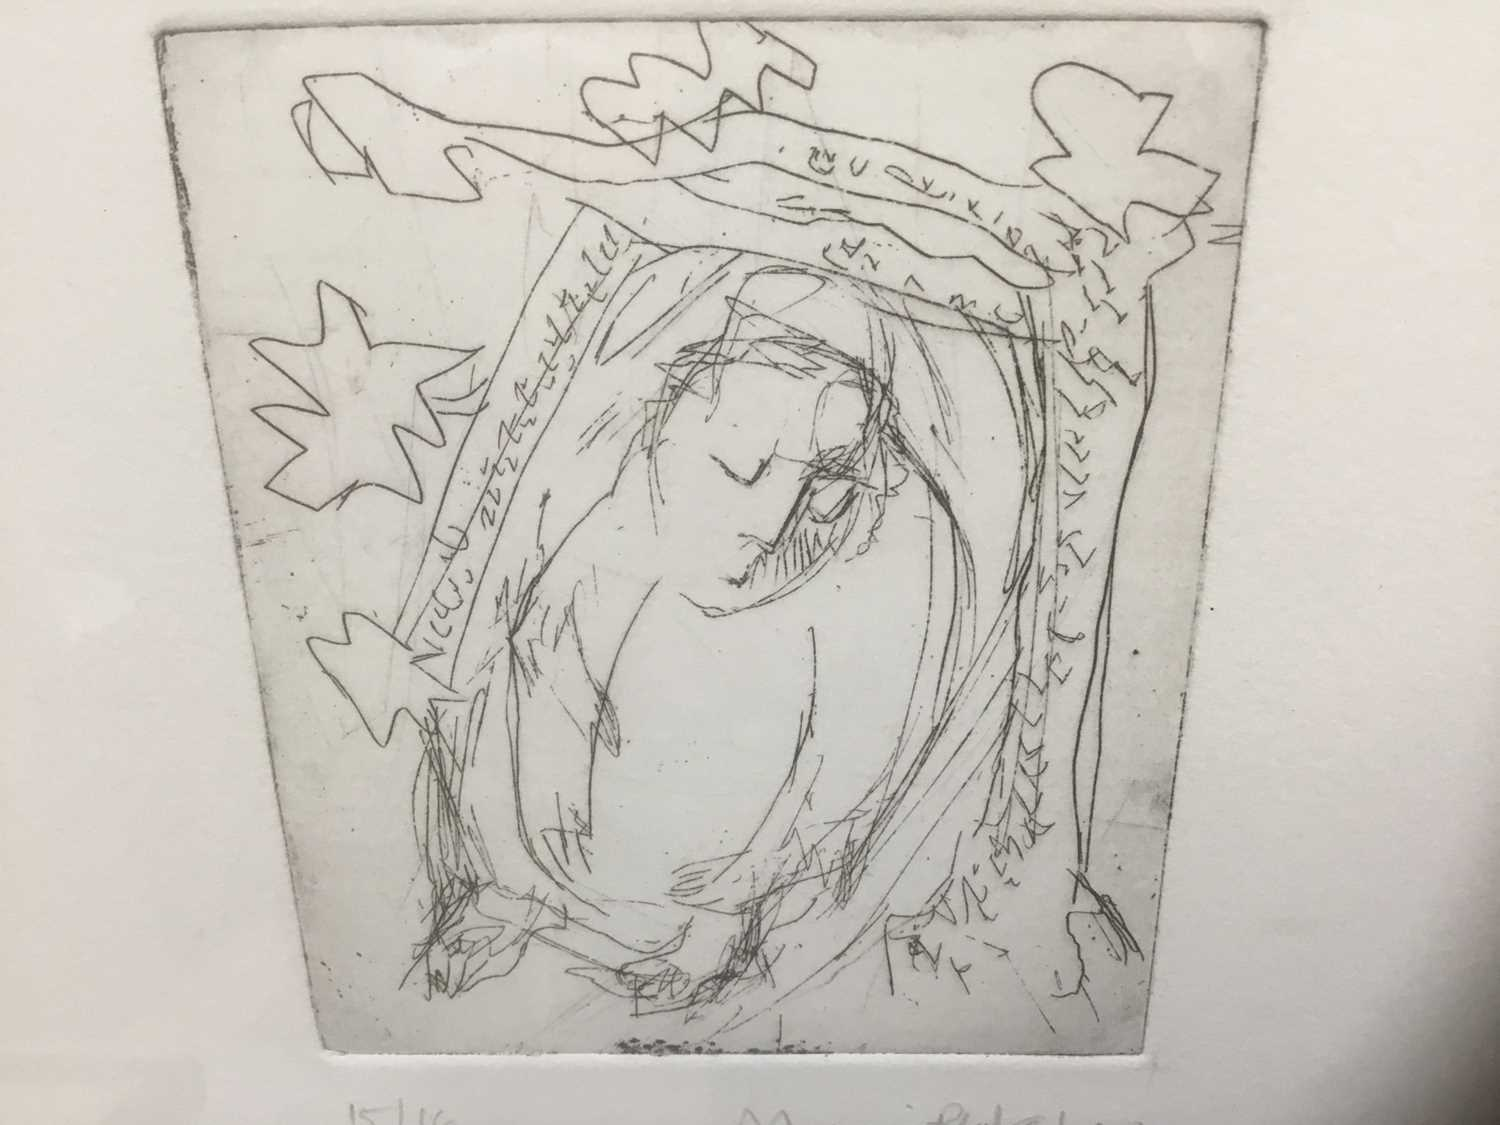 Marcia Blakenham (b. 1946), two signed etchings - figures, one numbered 15/16, in glazed frames - Image 3 of 9